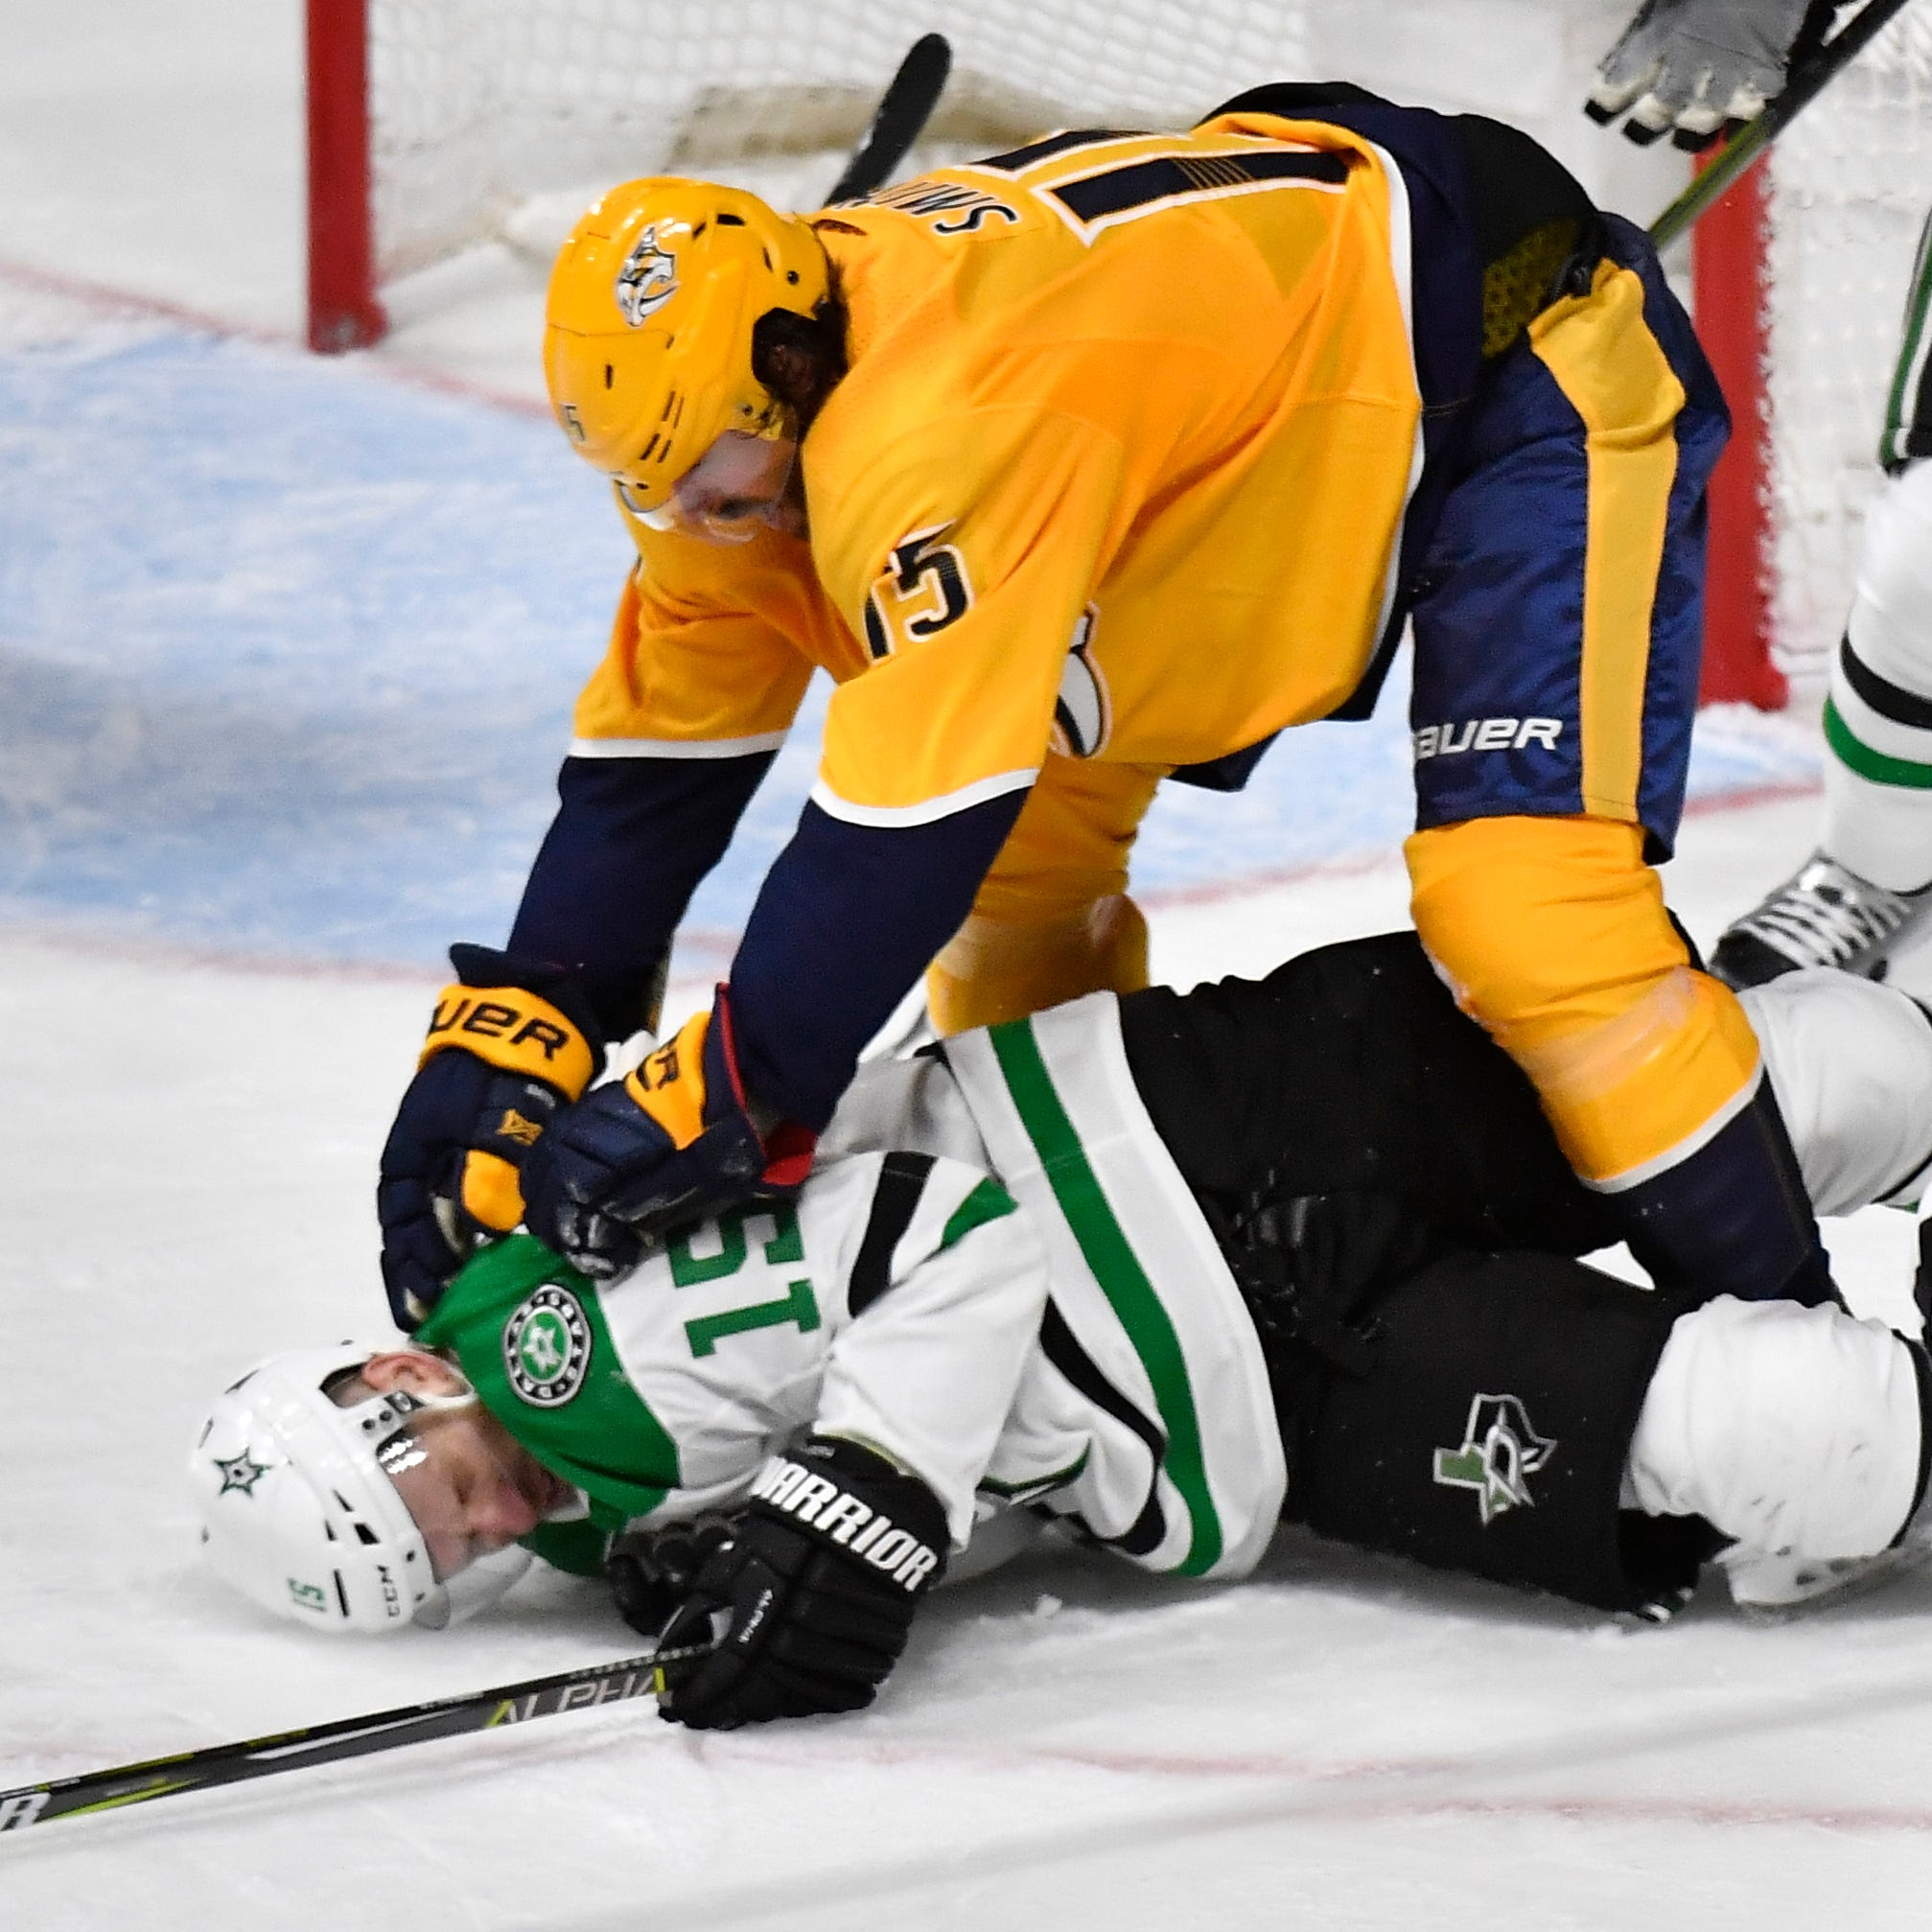 Anger is the Predators' friend, or at least it was for one night